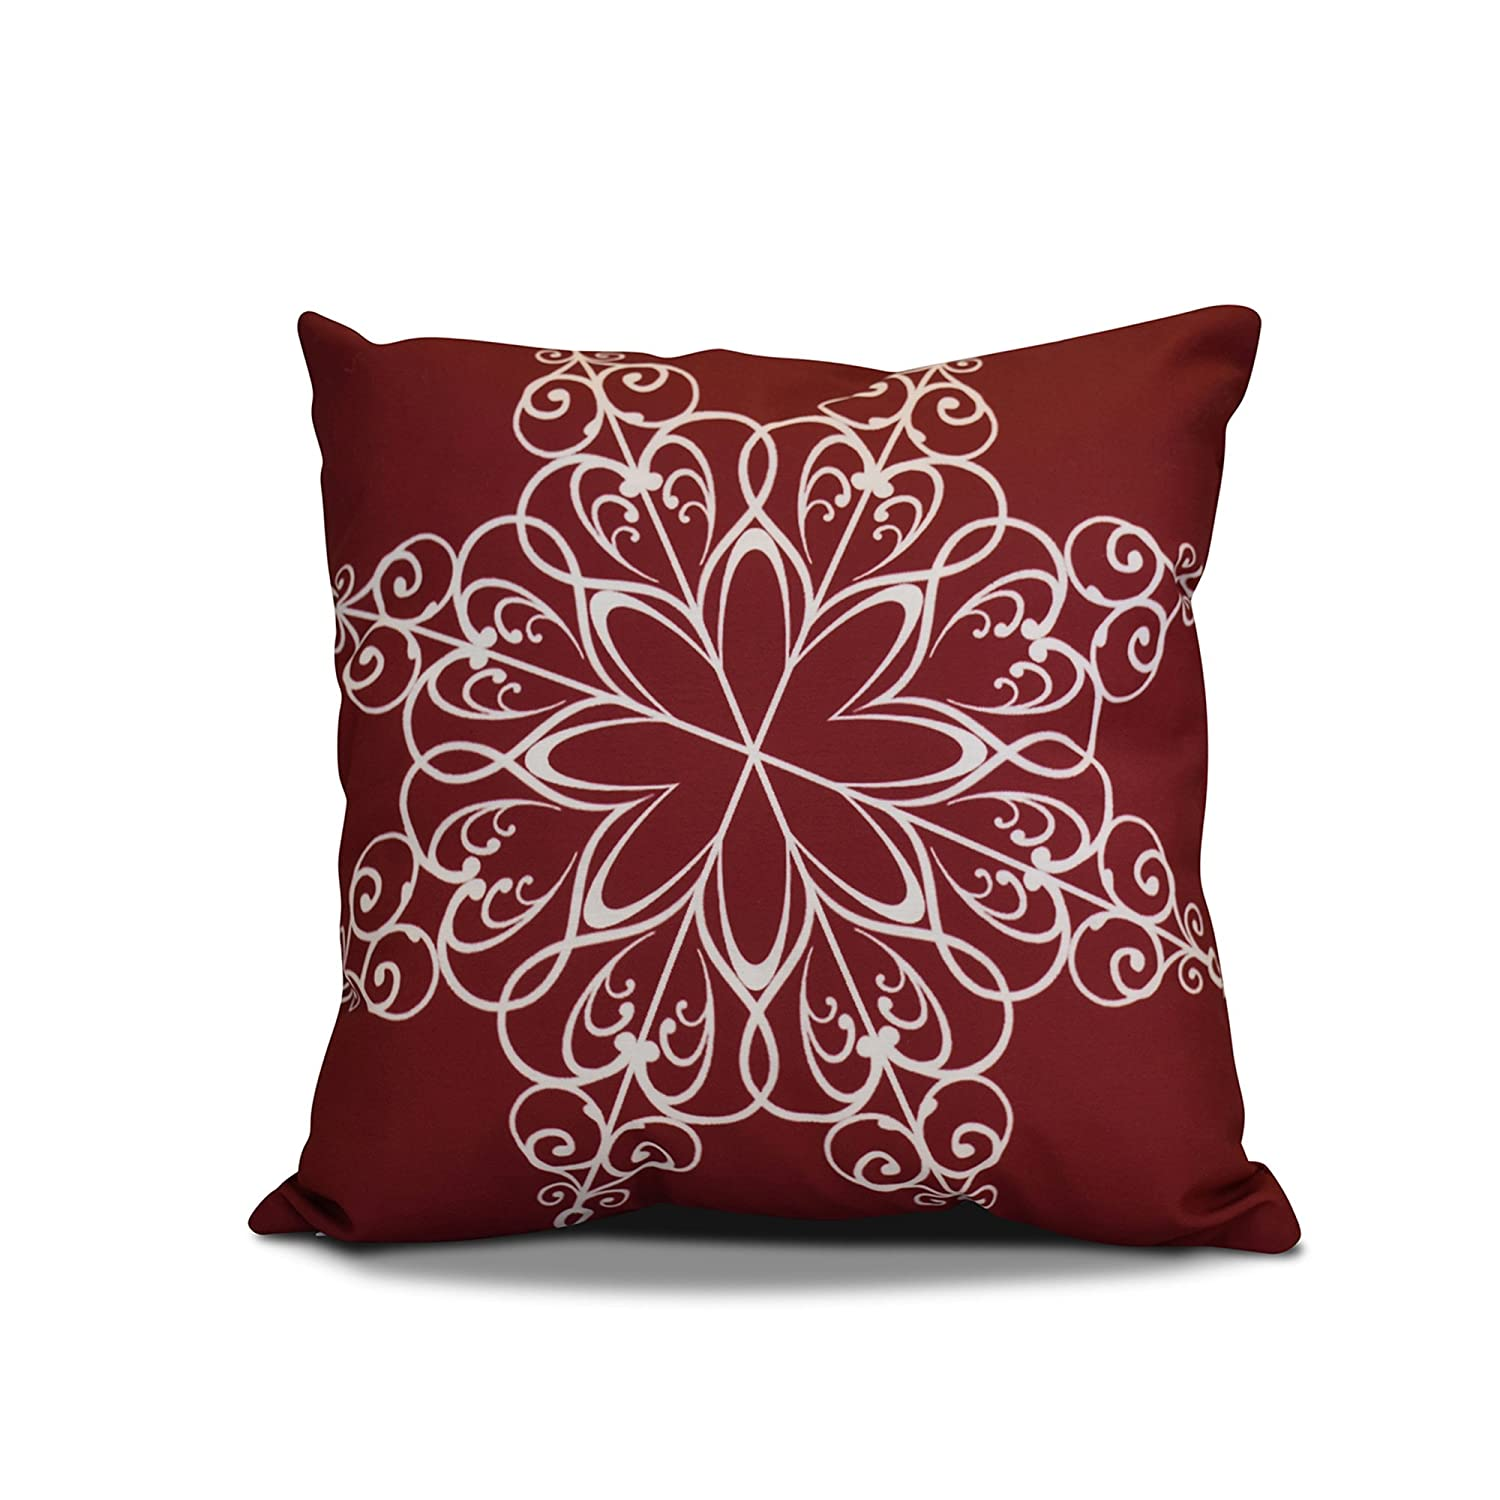 Decorative Holiday Pillow Cranberry E by design PHGN681RE6-18 18 x 18 inch Geometric Print